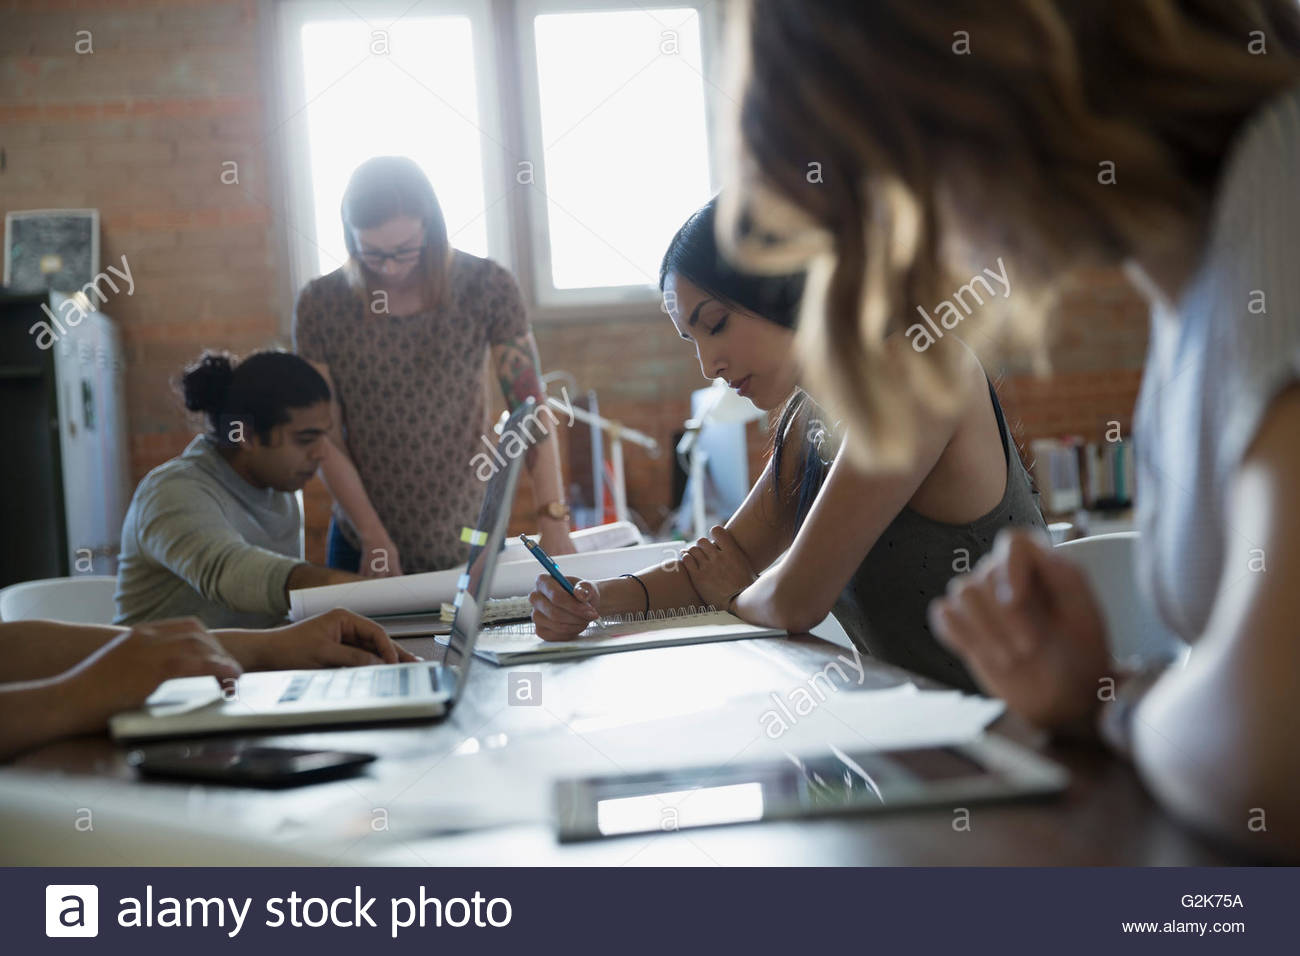 Designers working at laptop and on proofs in office - Stock Image